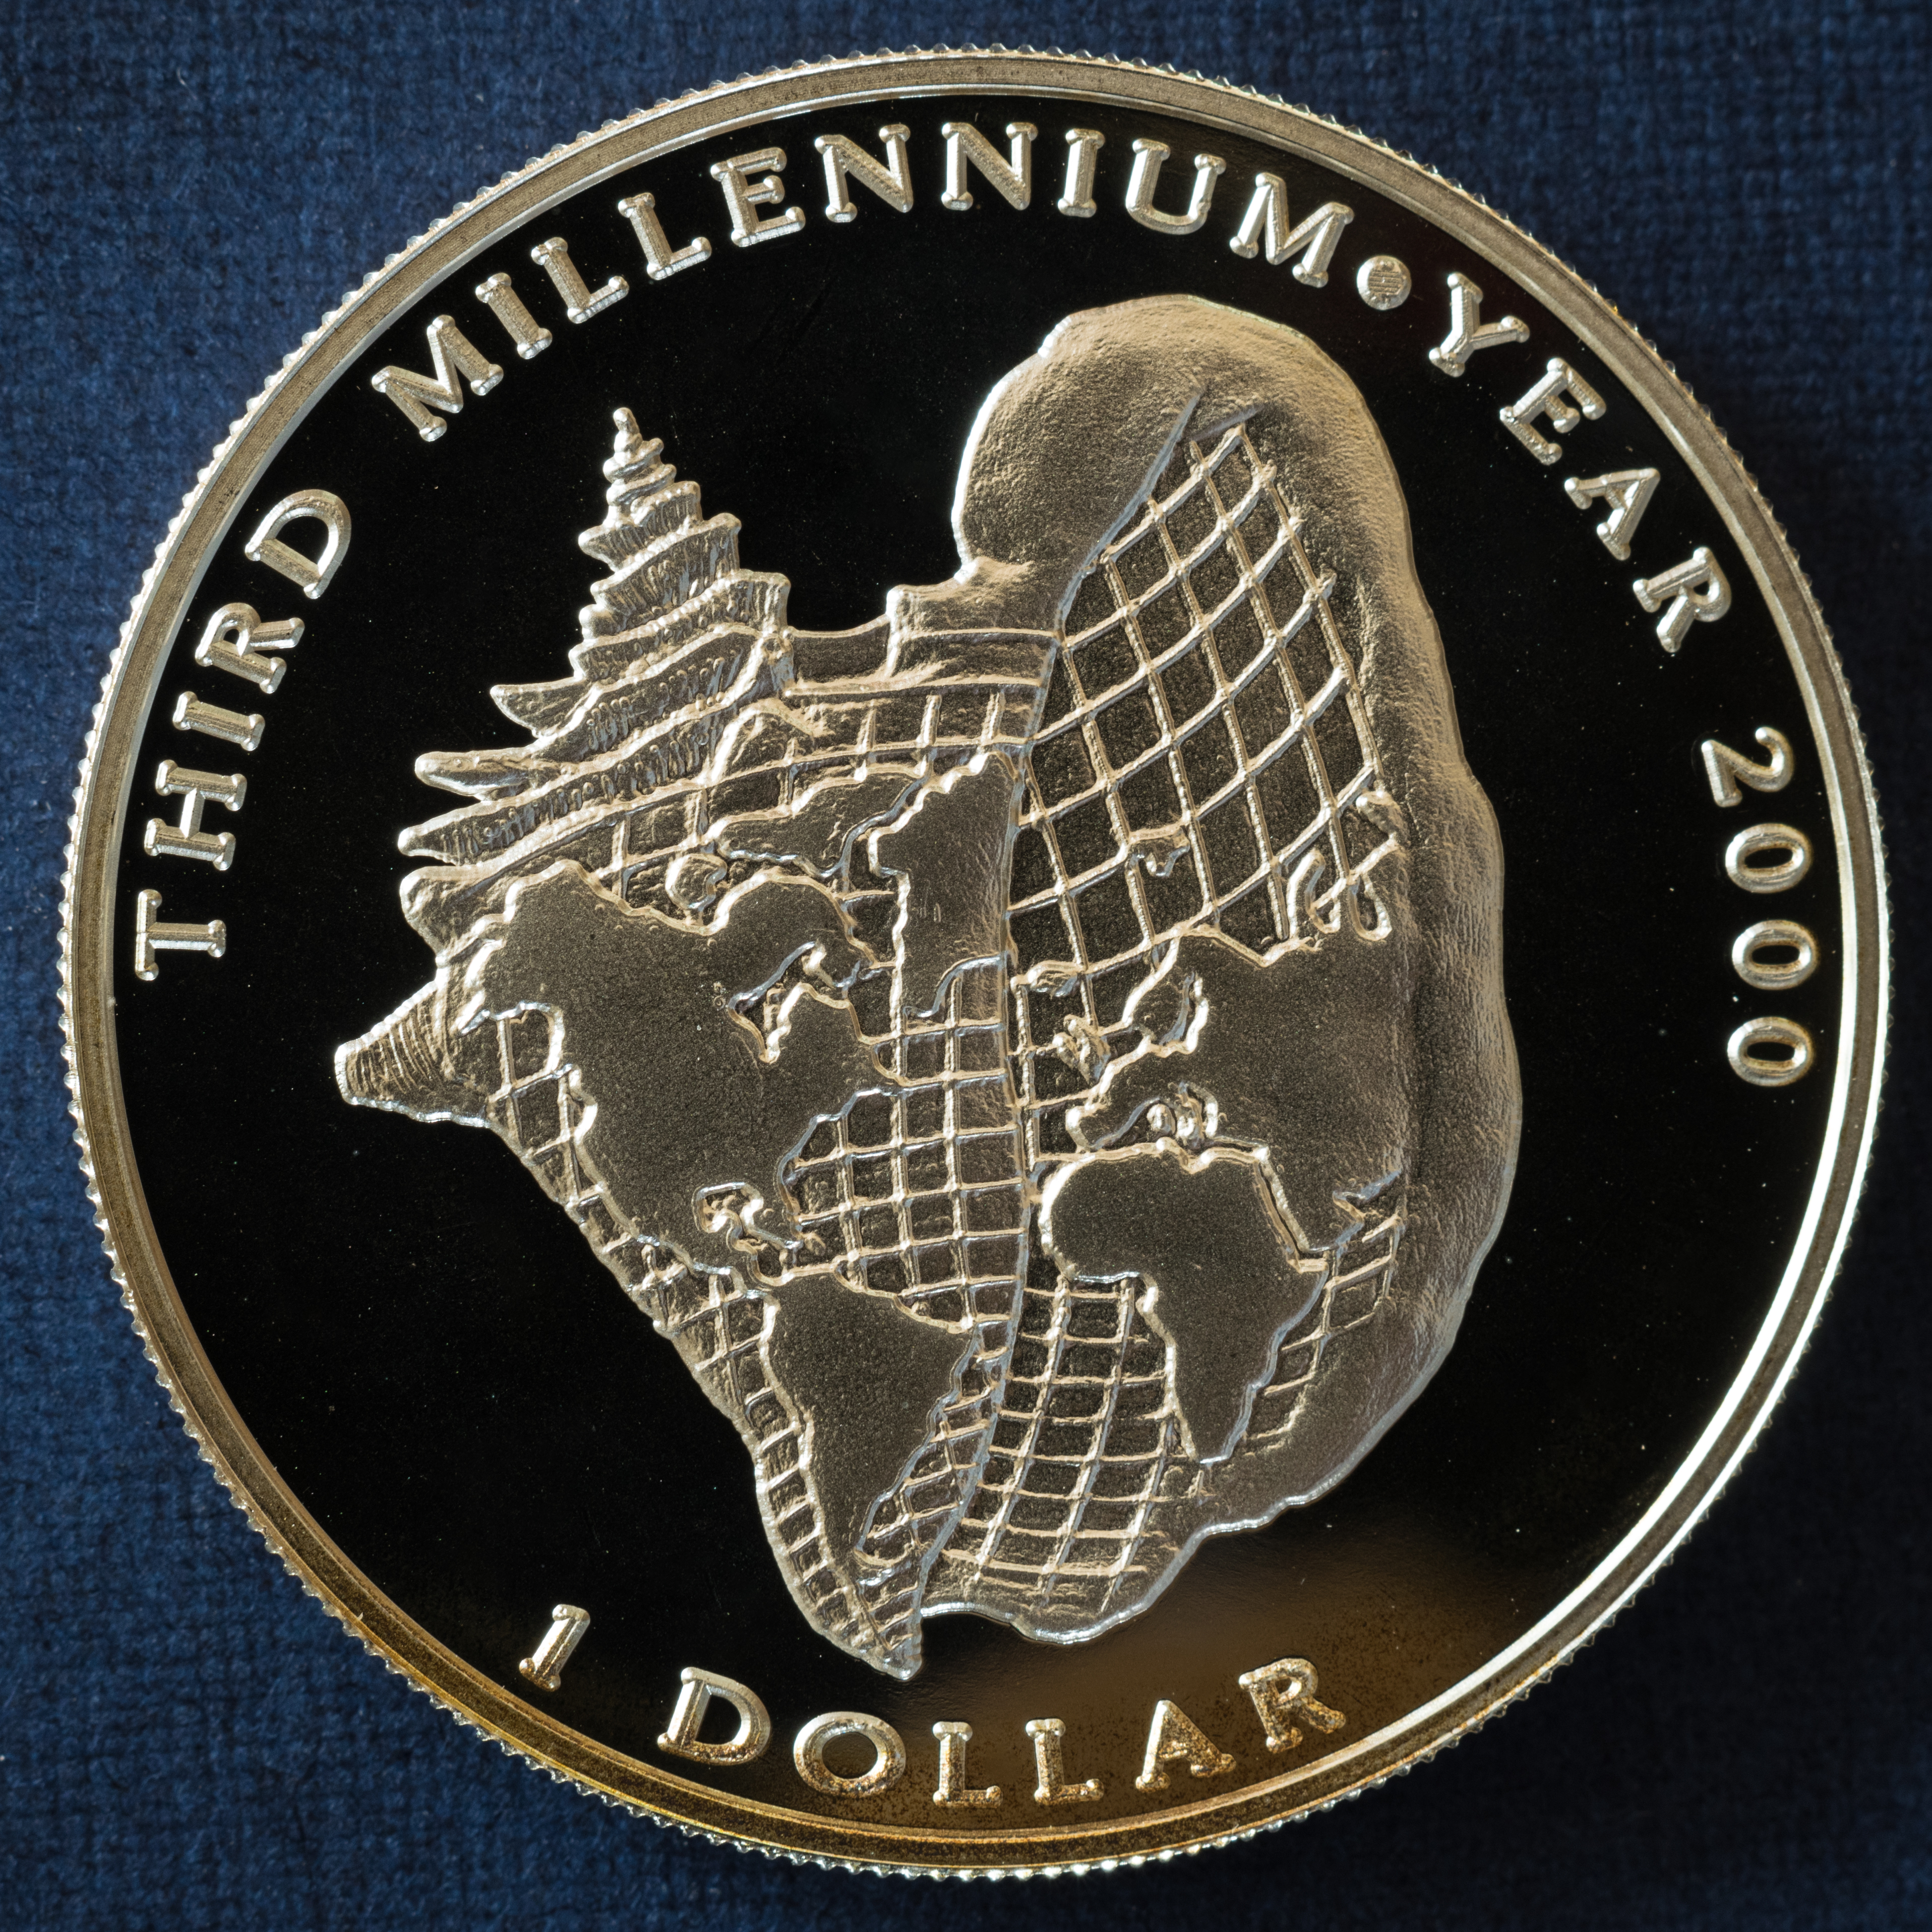 Filethird Millennium Year 2000 1 Dollar Bjpg Wikimedia Commons